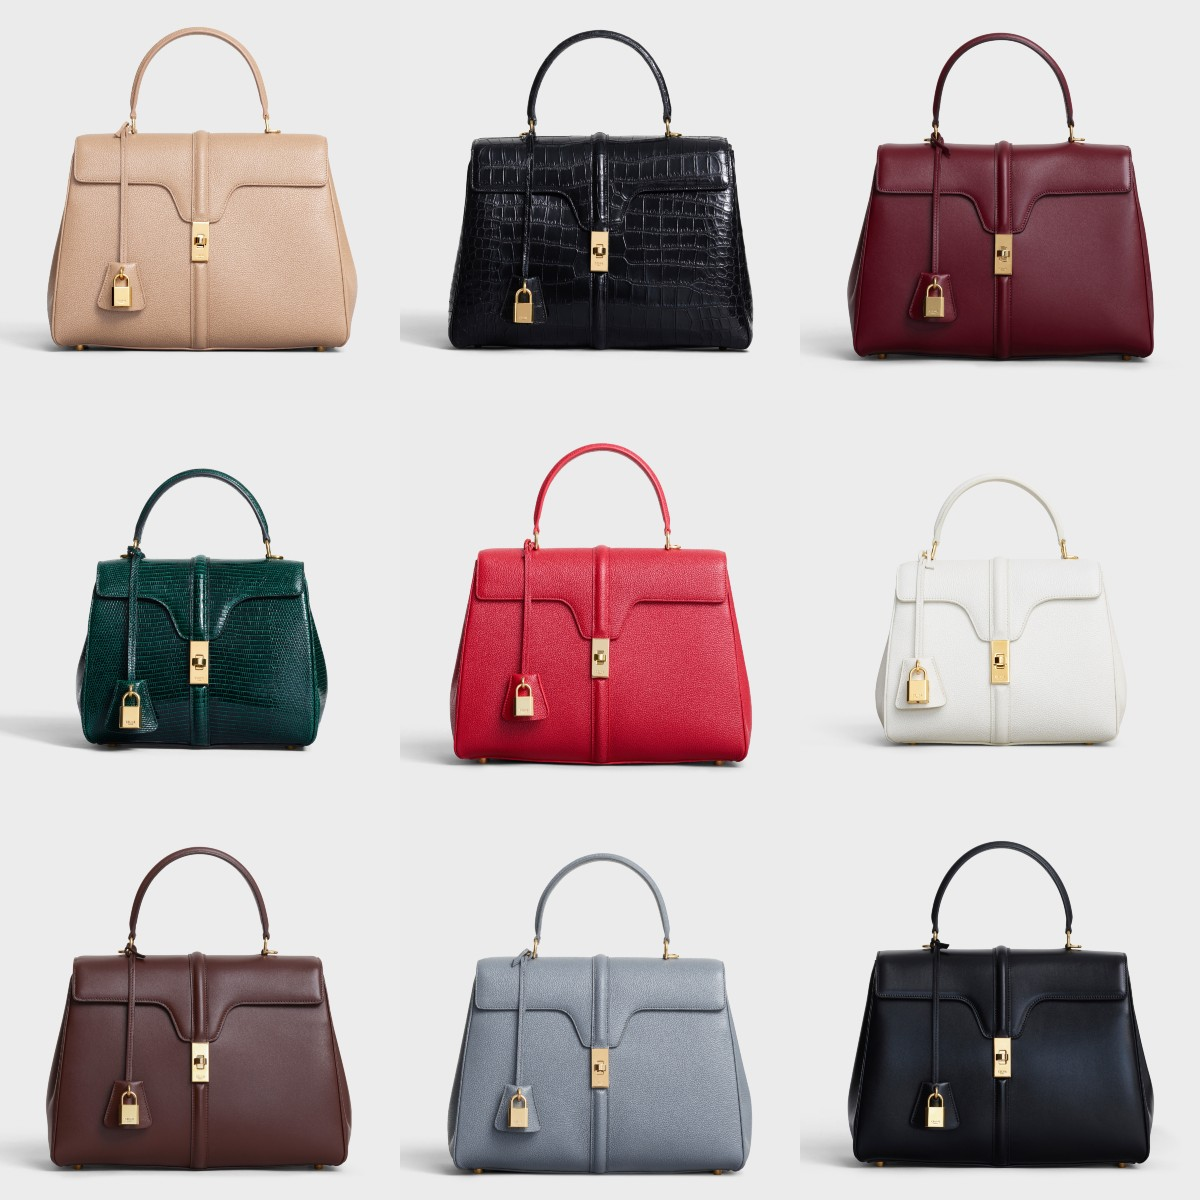 13d429994586 Hedi Slimane s vision for Celine as seen through his debut bag collection(s)